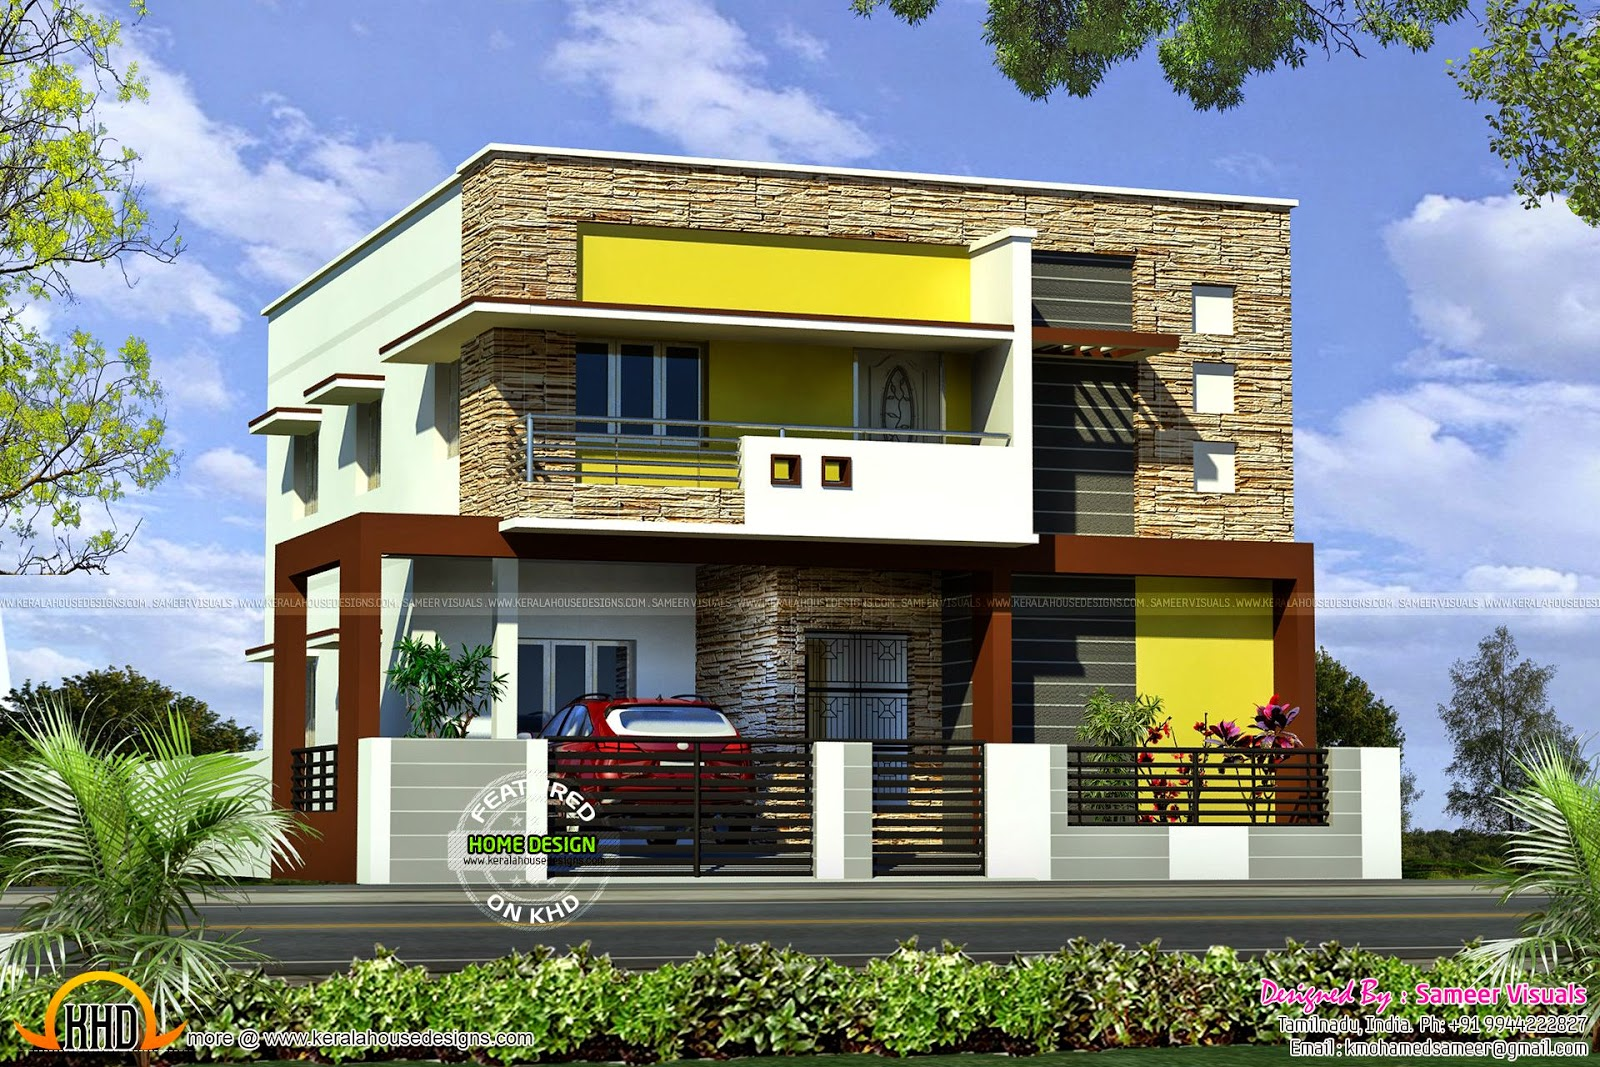 221 square meter flat roof house kerala home design and floor plans - House plans atticsquare meters ...